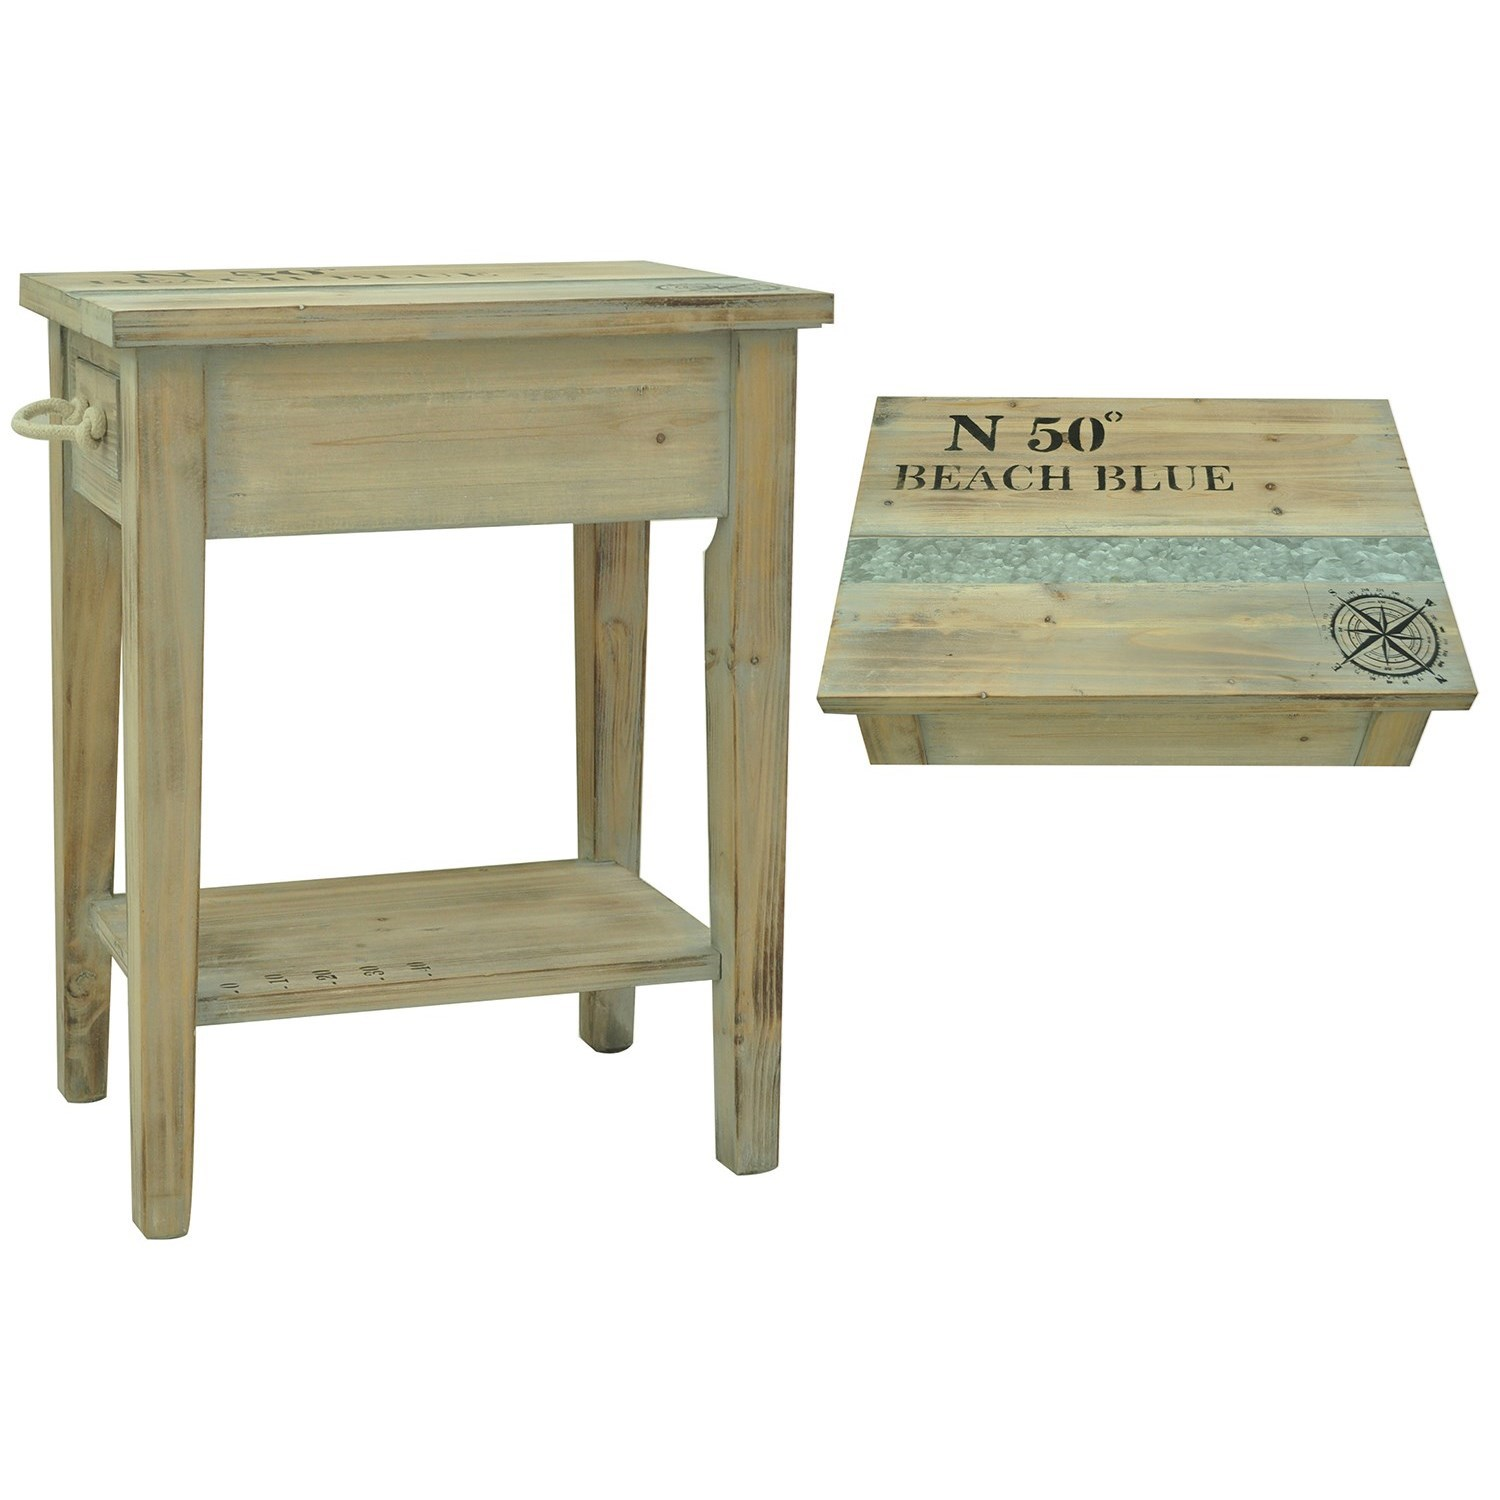 Accent Furniture Grand Isle Chairside Table by Crestview Collection at Suburban Furniture